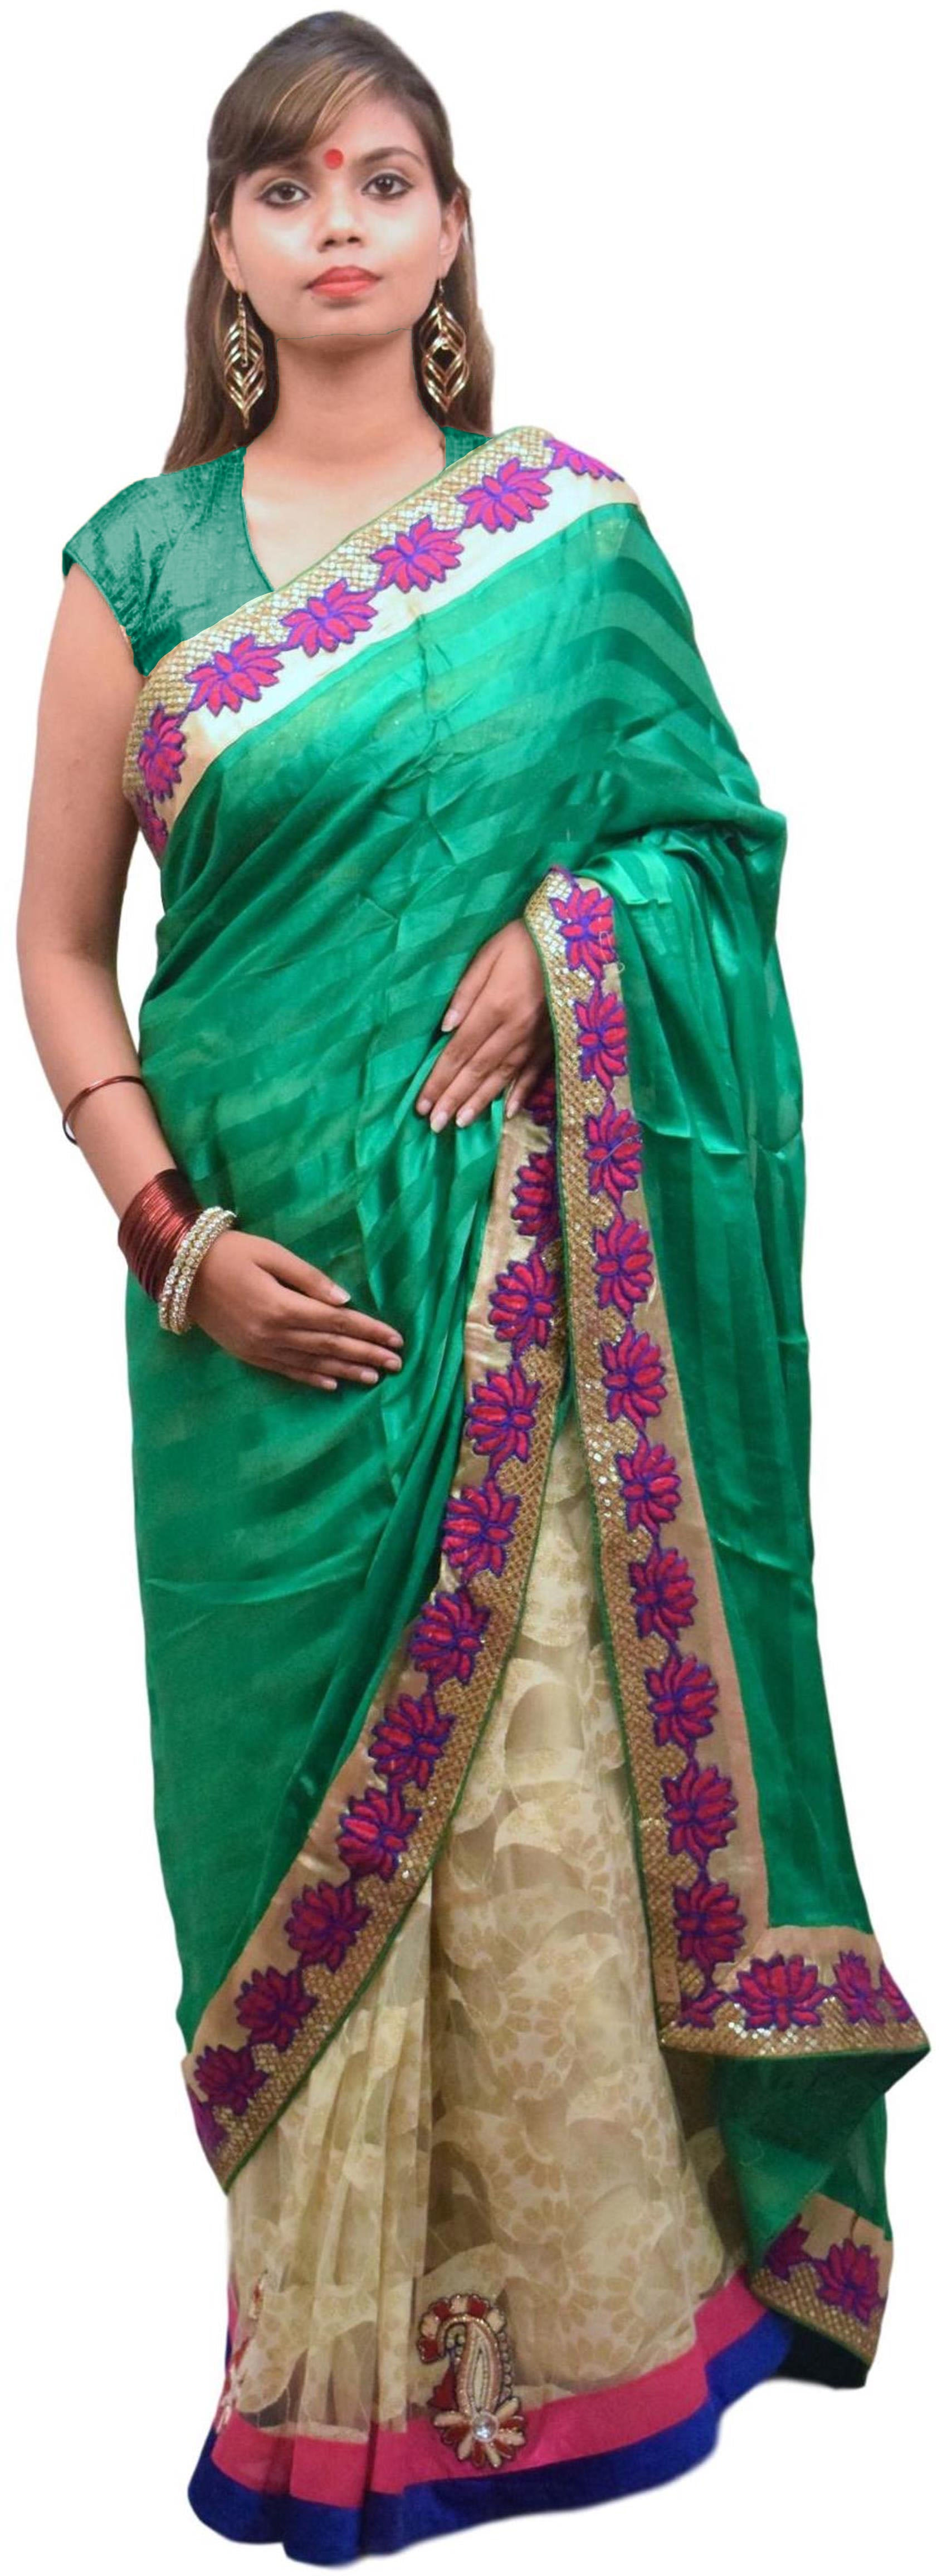 Green & Cream Designer Crep & Net Hand Embroidery Stone Bullion Sequence Zari Thread Beads Work Saree Sari